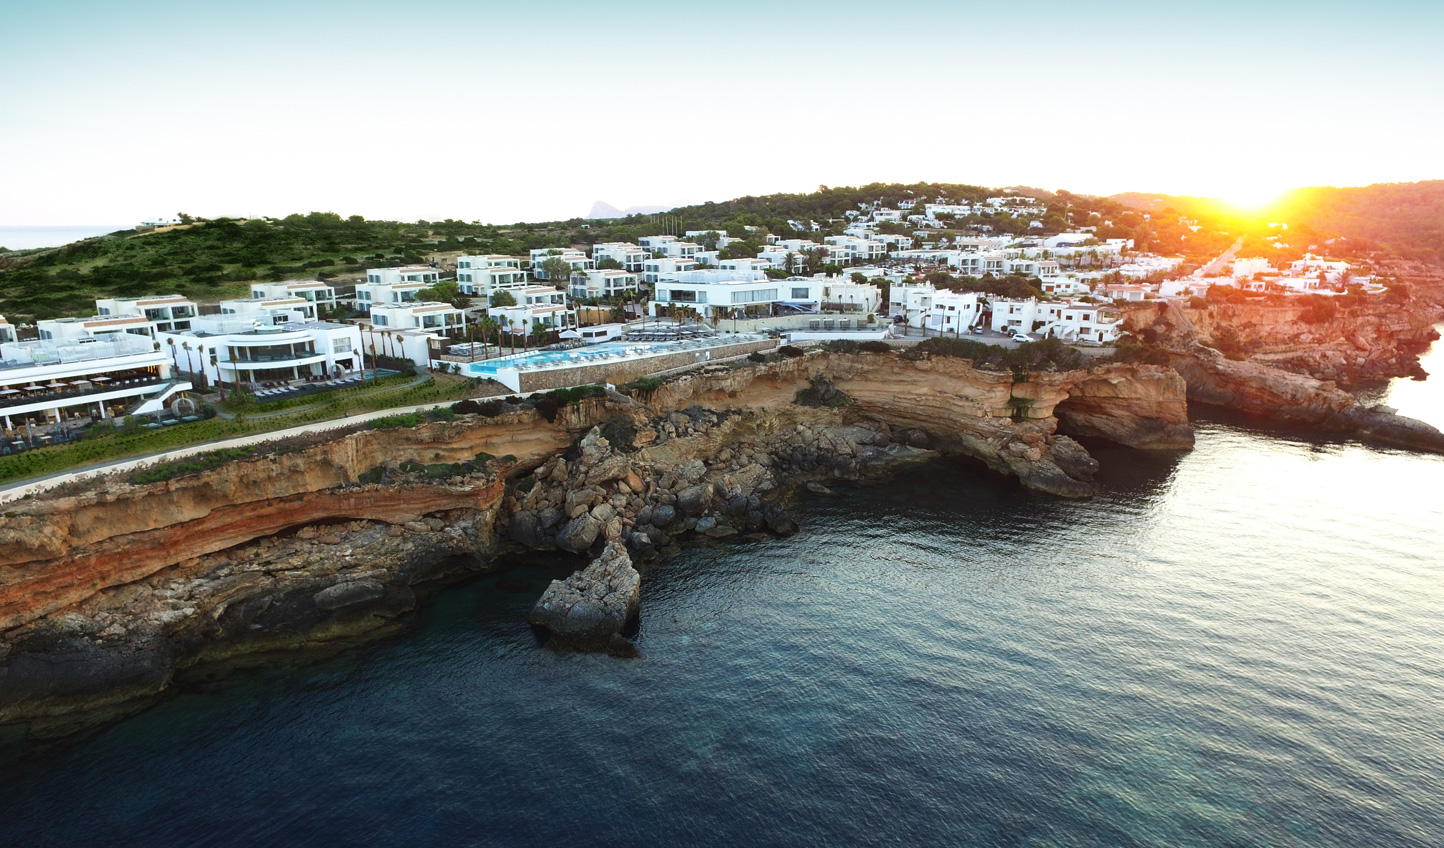 Retreat to a peaceful corner of Ibiza at 7Pines